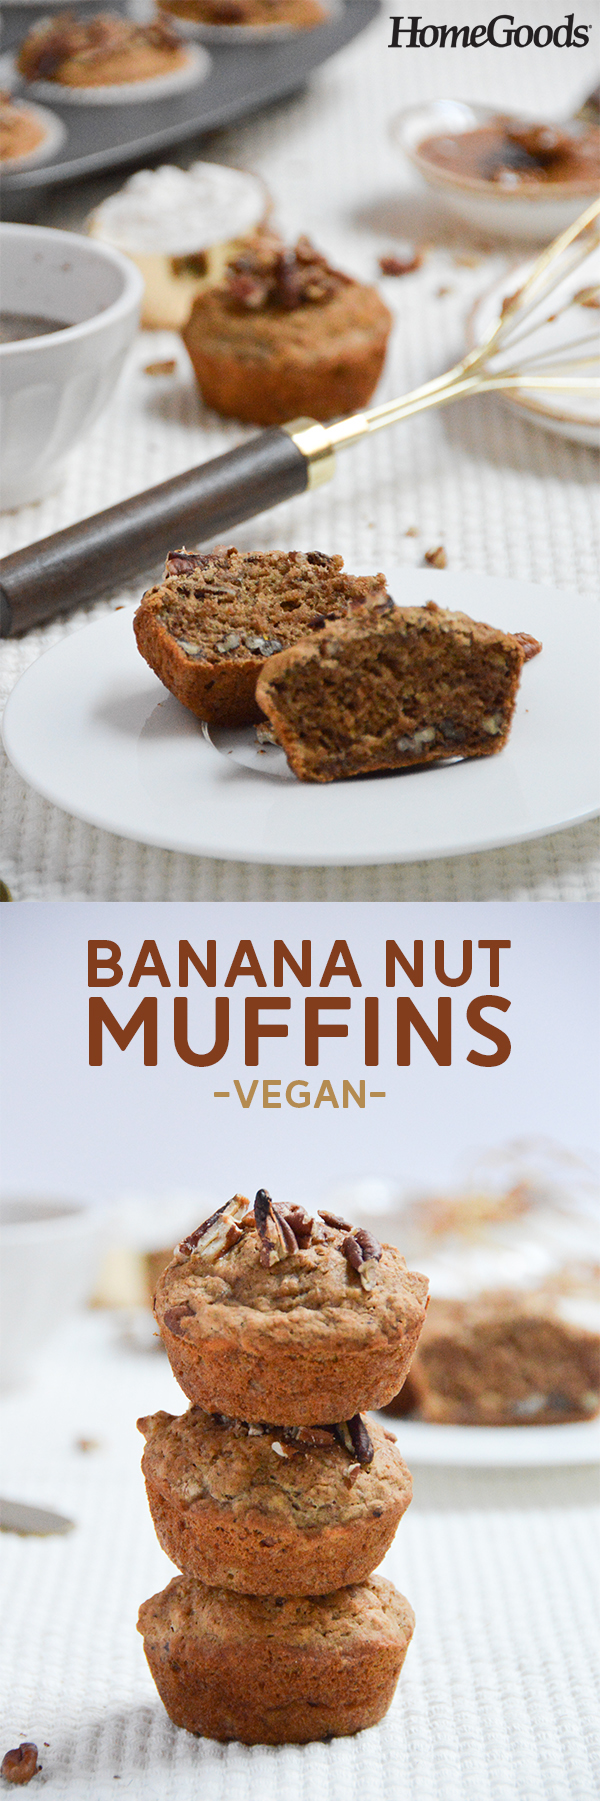 Banana Nut Muffins Vegan Pumps Iron